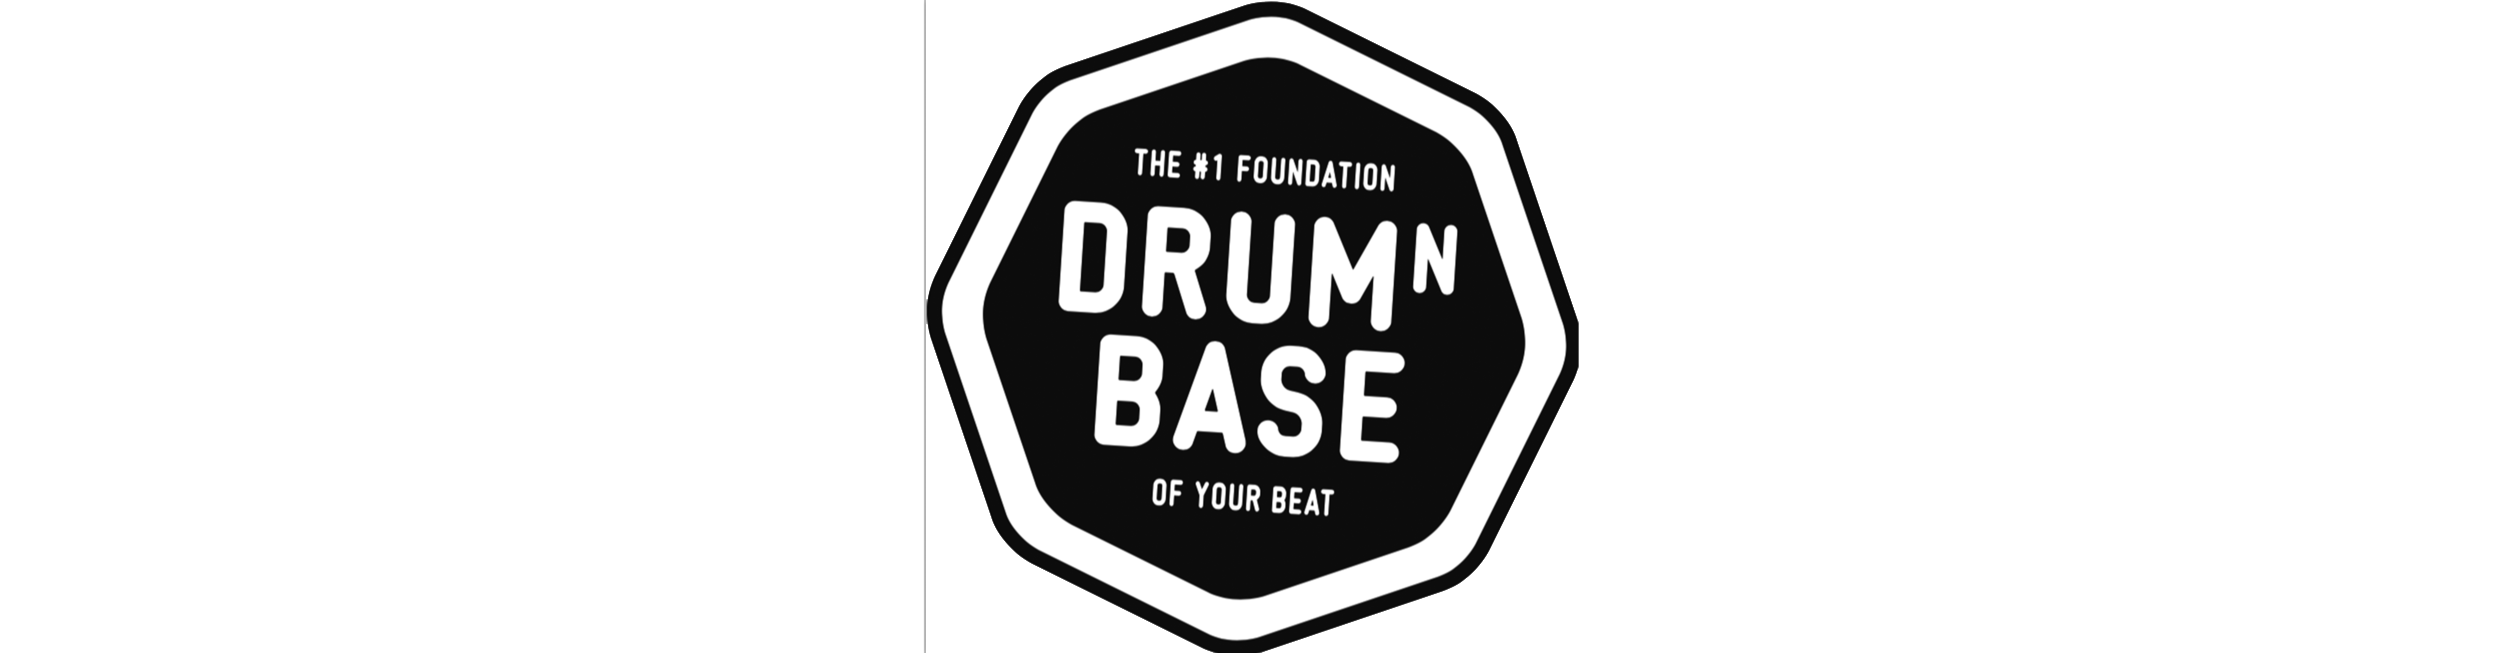 Productos - DRUM N BASE